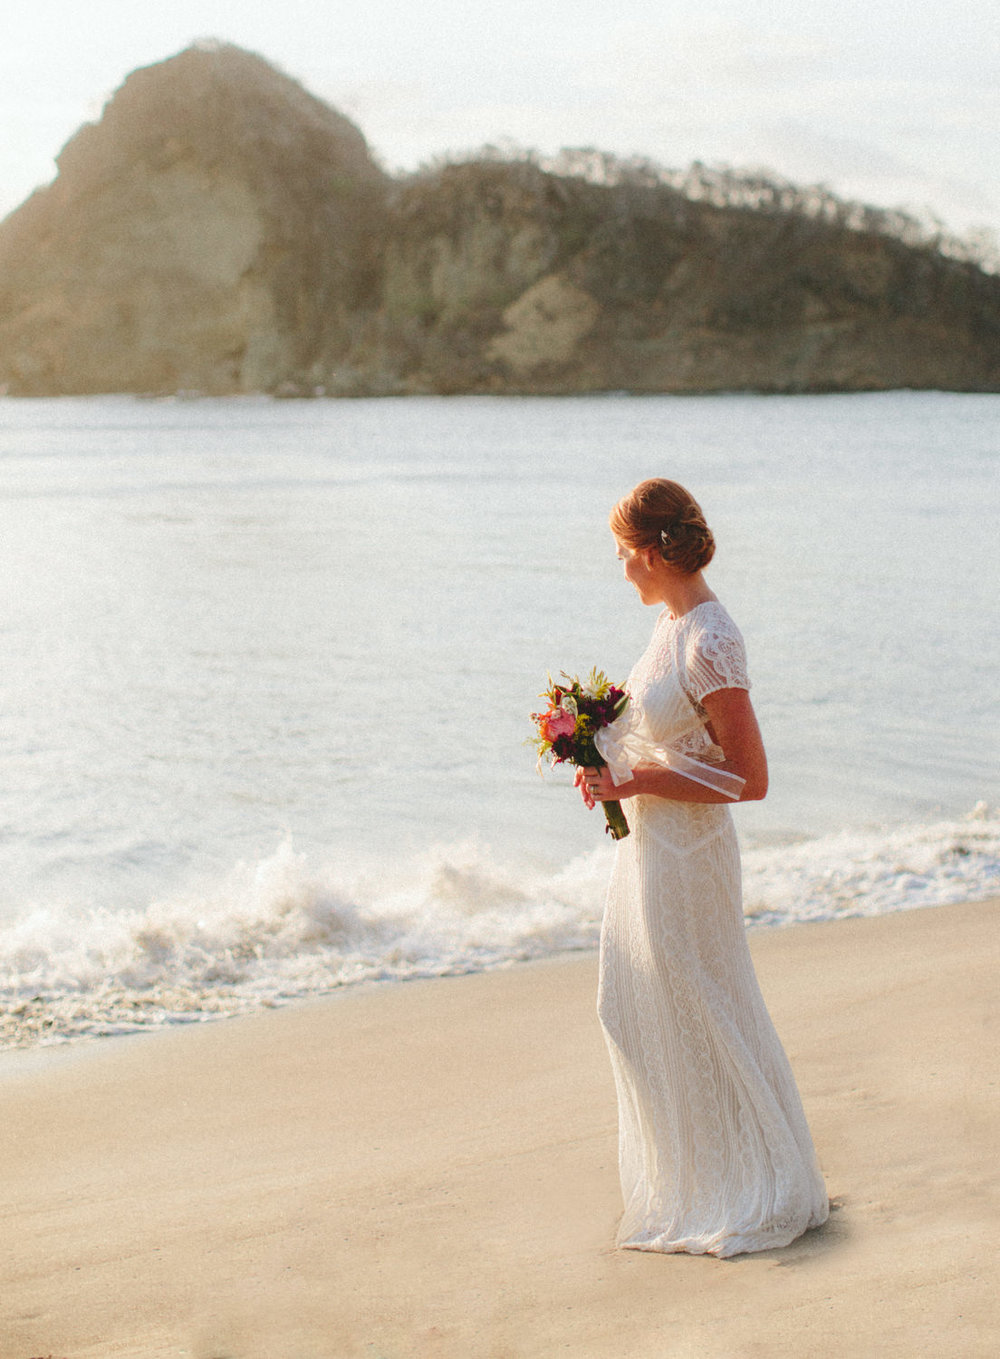 Bride at the beach in Aqua Nicaragua. Wedding photography.